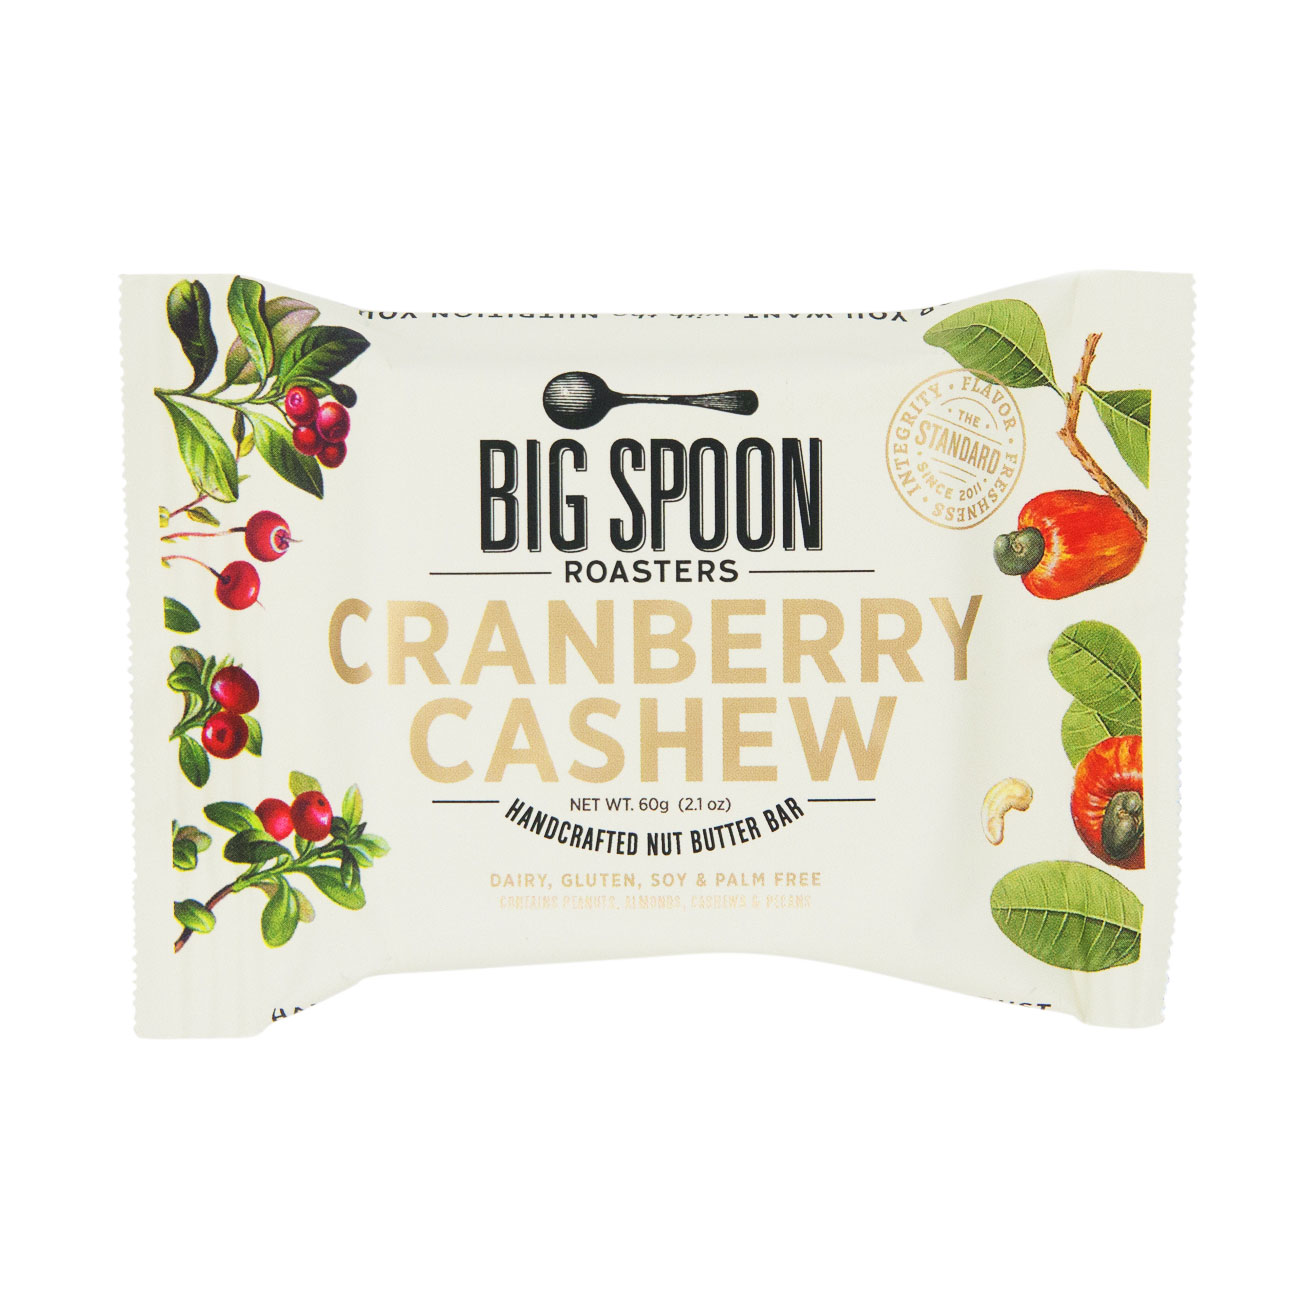 Best Snack Bars: Big Spoon Roasters Cranberry Cashew Nut Butter Bar